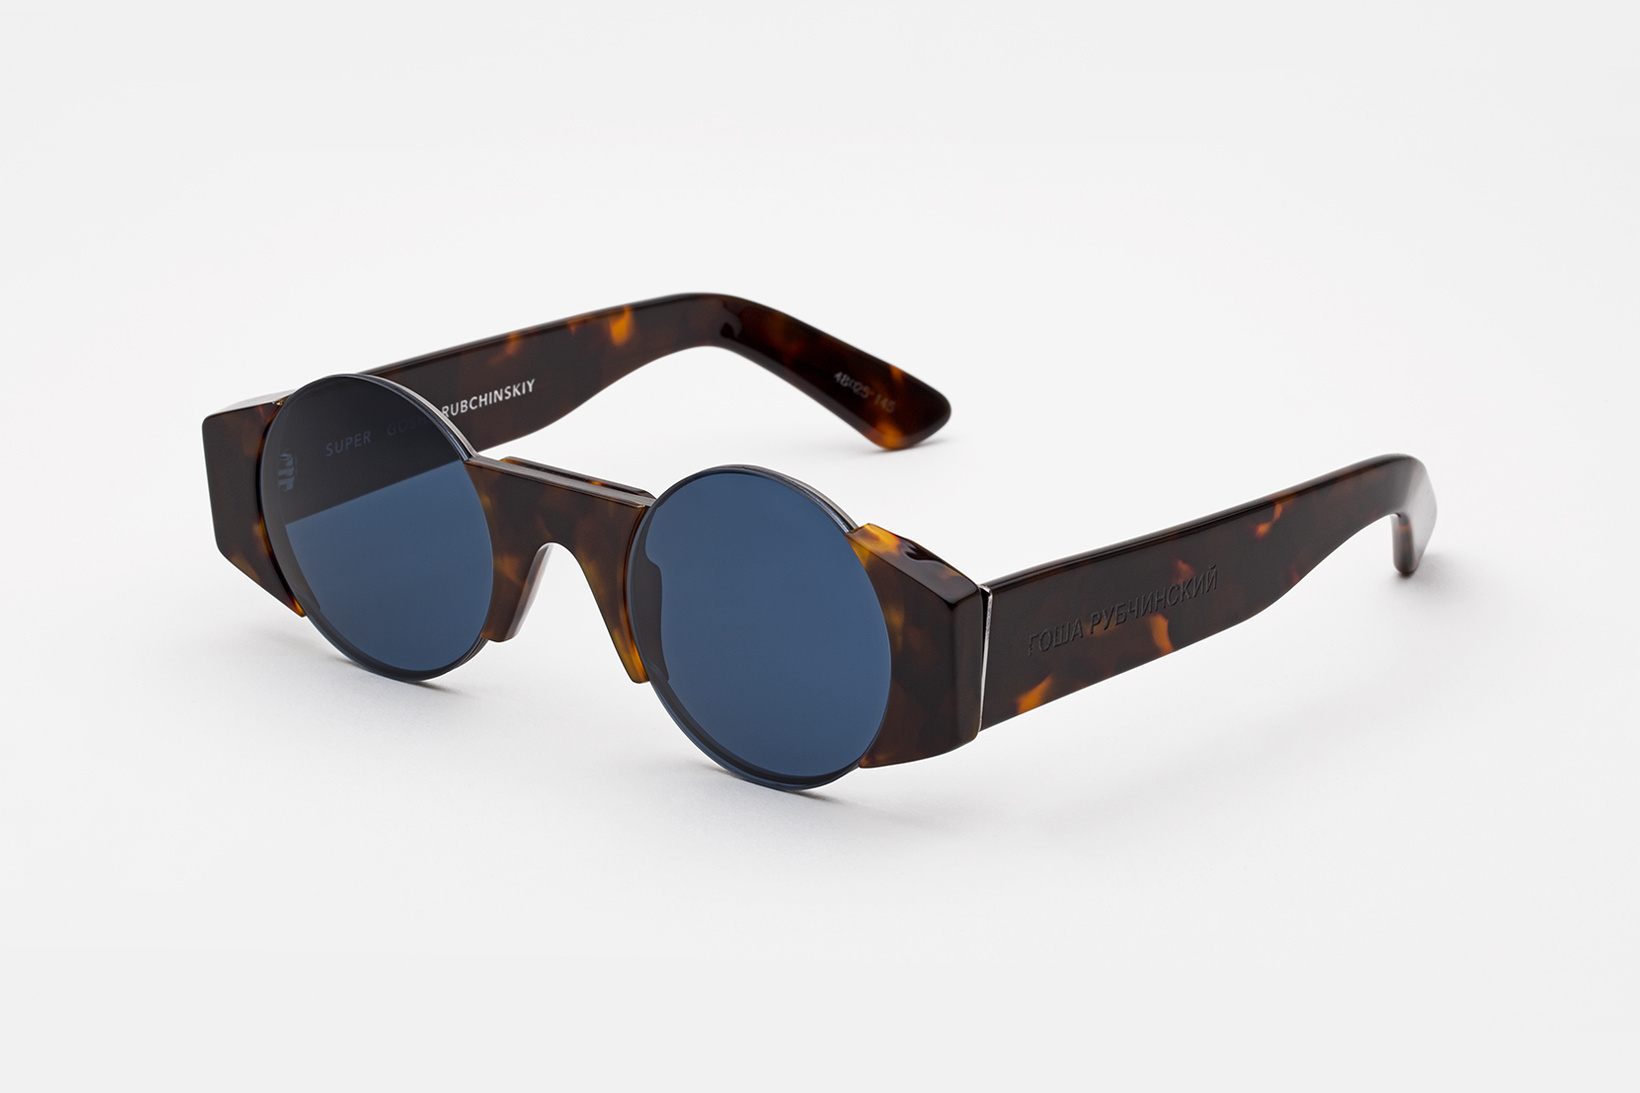 Retrosuperfuture Sunglasses  gosha rubchinskiy teams up with super by retrosuperfuture